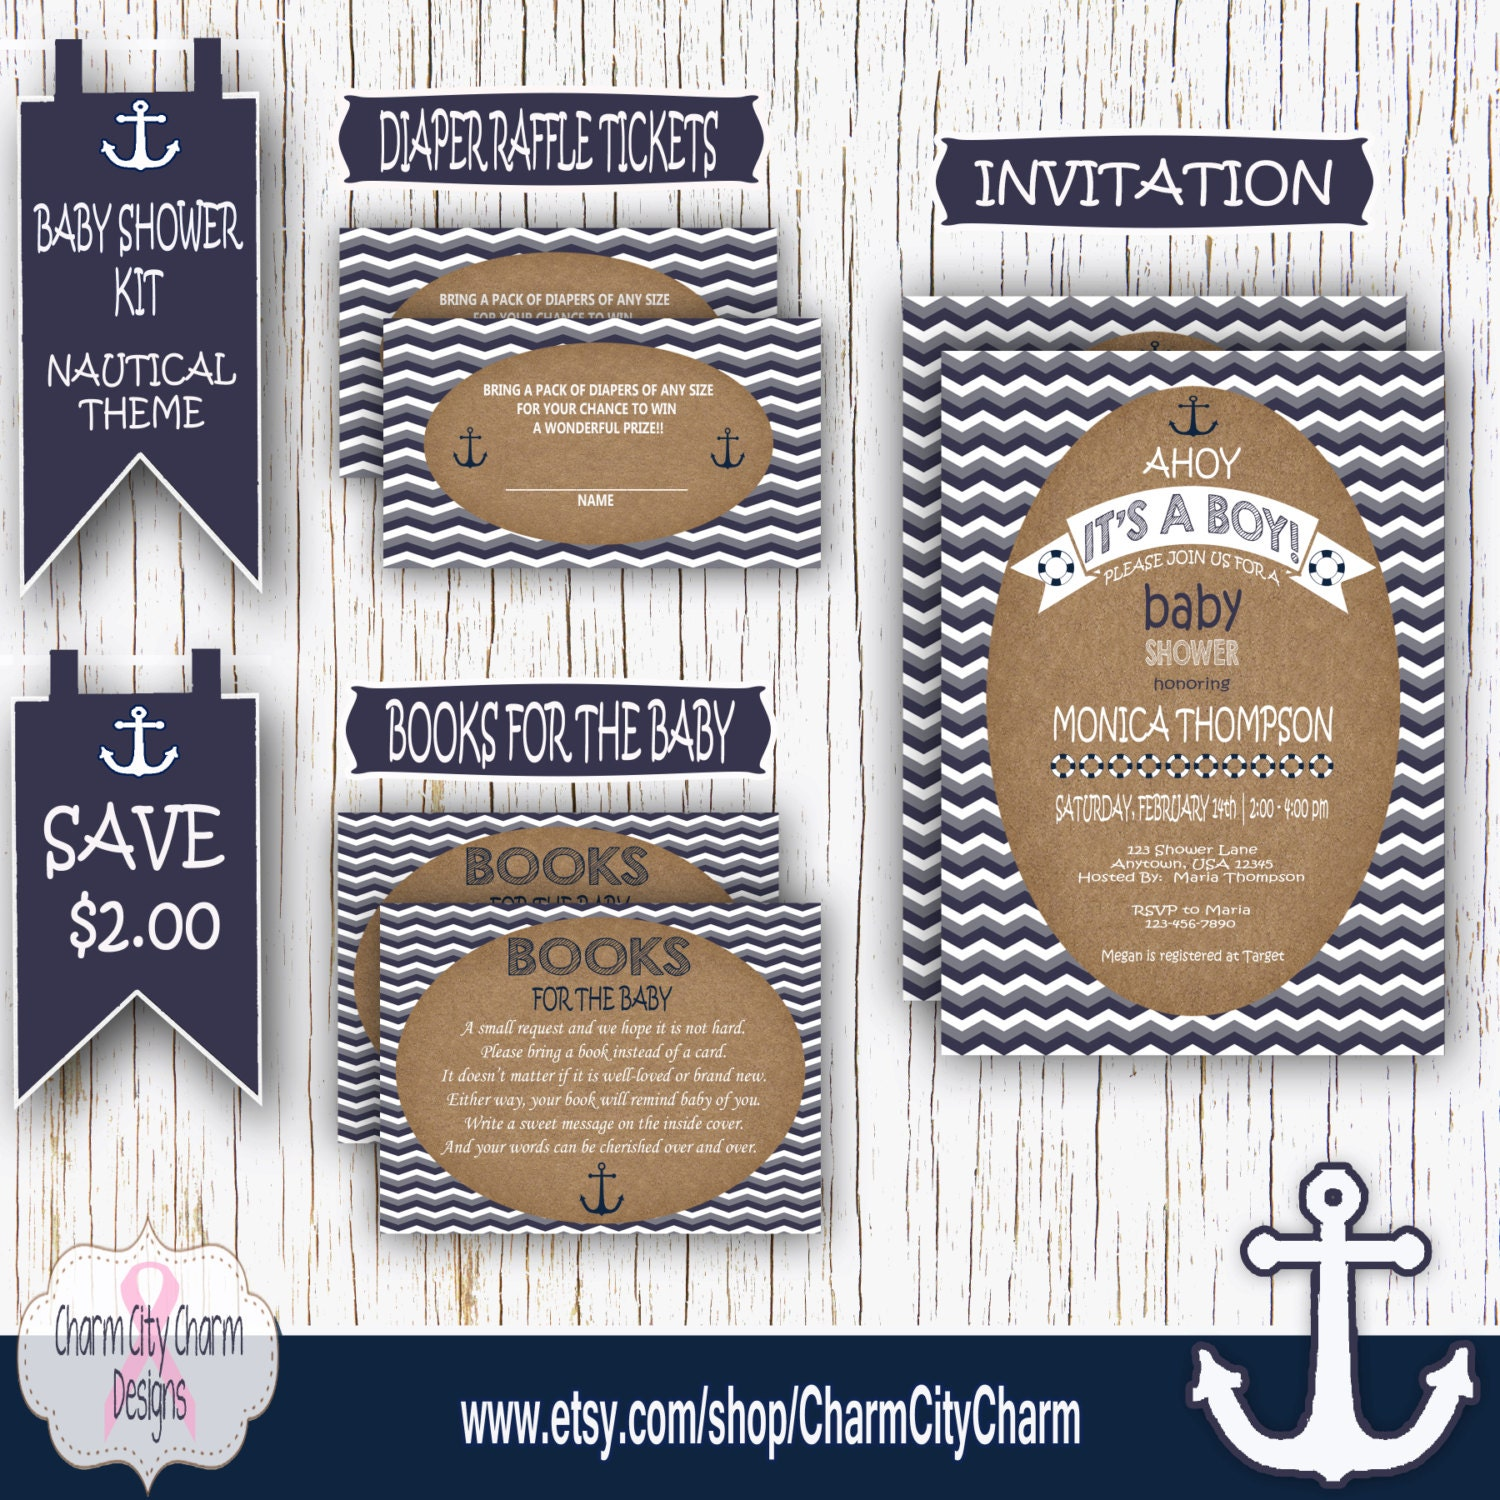 book raffle ticket baby shower invitation kit nautical baby shower invitation ahoy it s a boy bring a book insert cards diaper raffle tickets printables